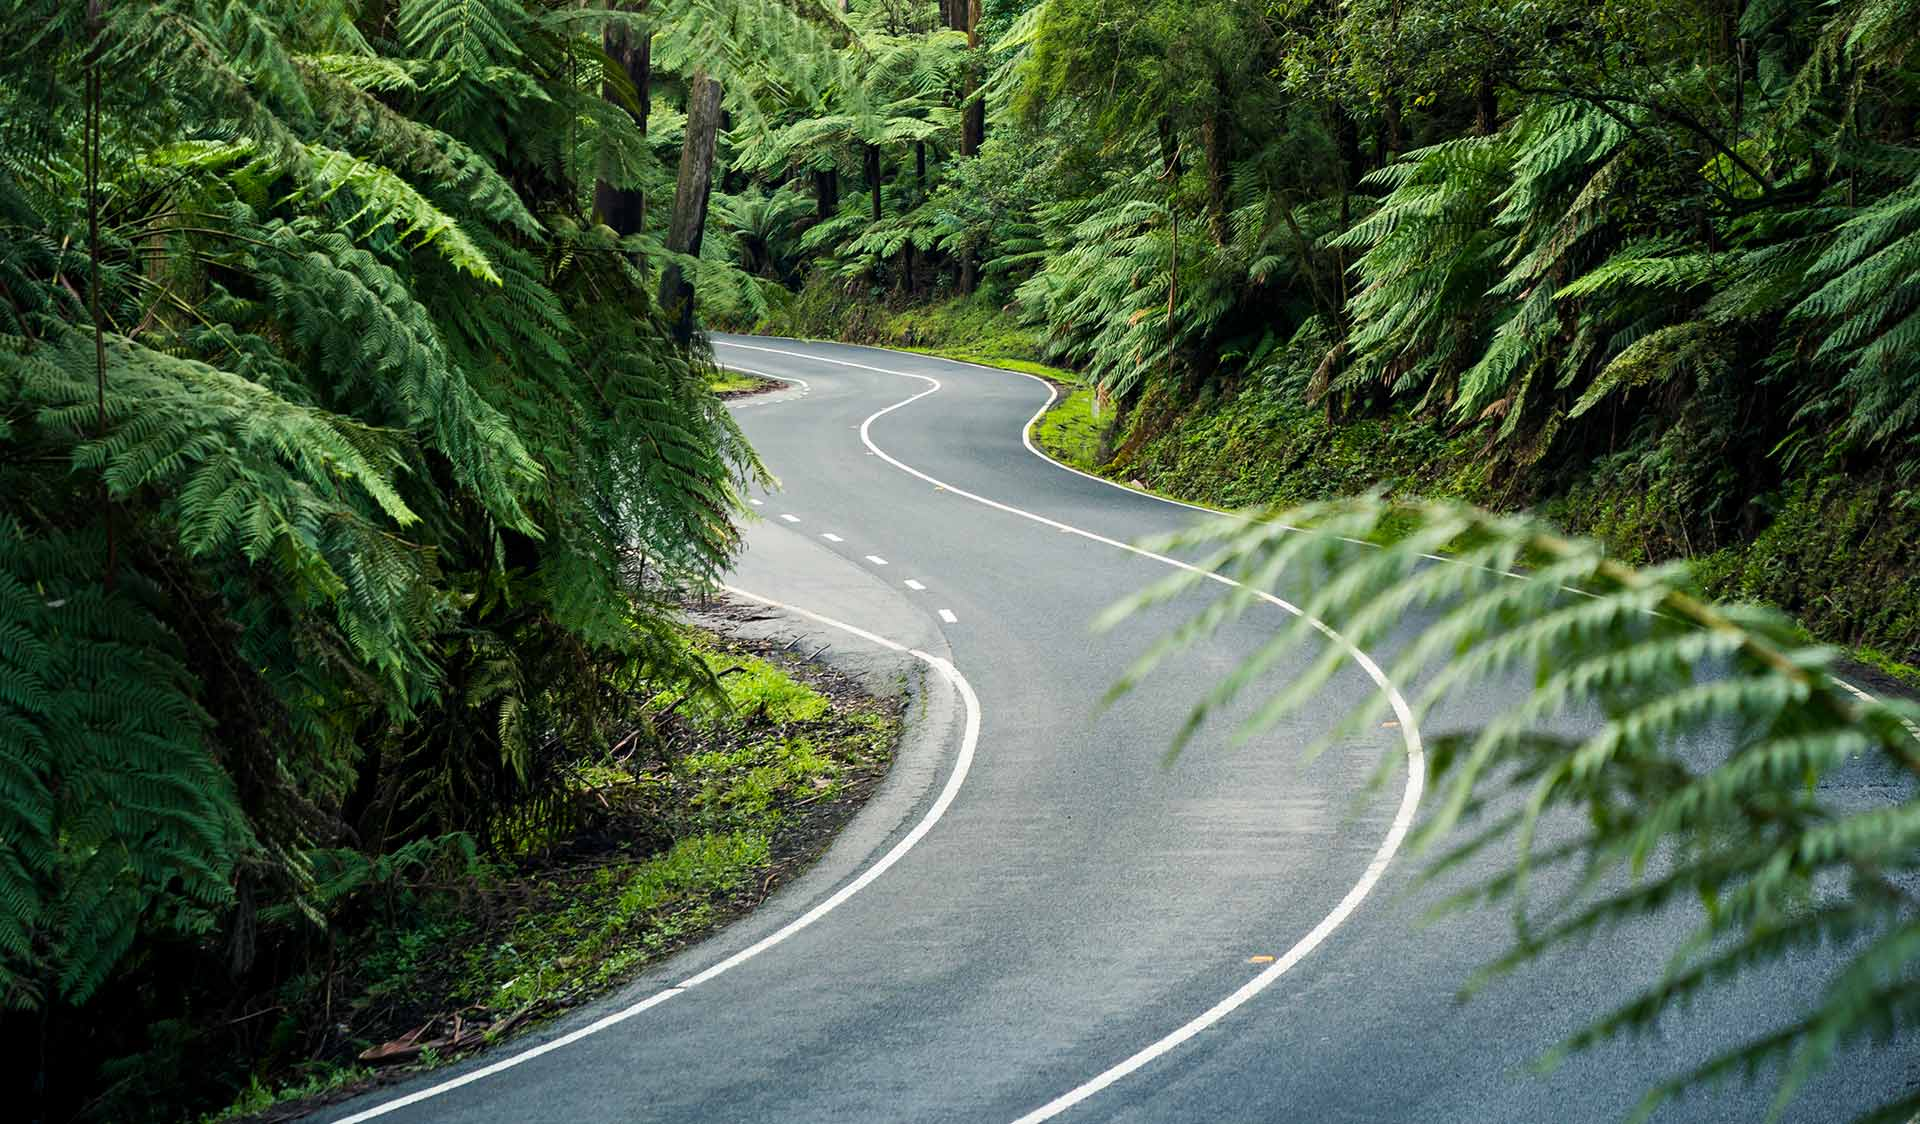 A road winds through a lush temporate rain forest.